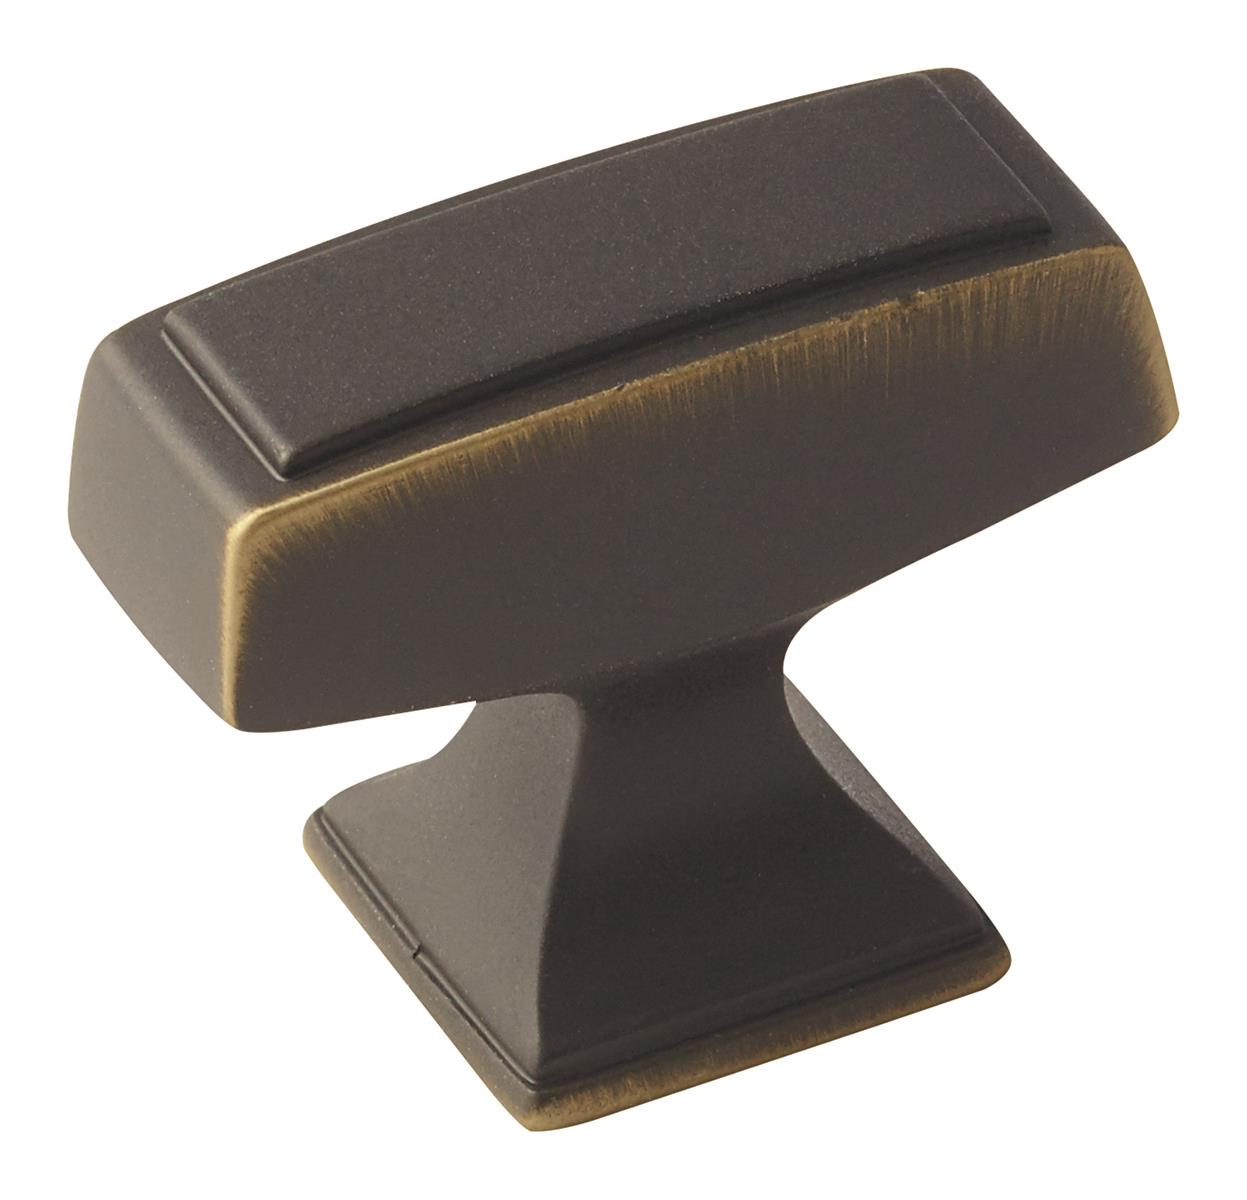 Mulholland 1-1/2 in (38 mm) Length Venetian Bronze Cabinet Knob